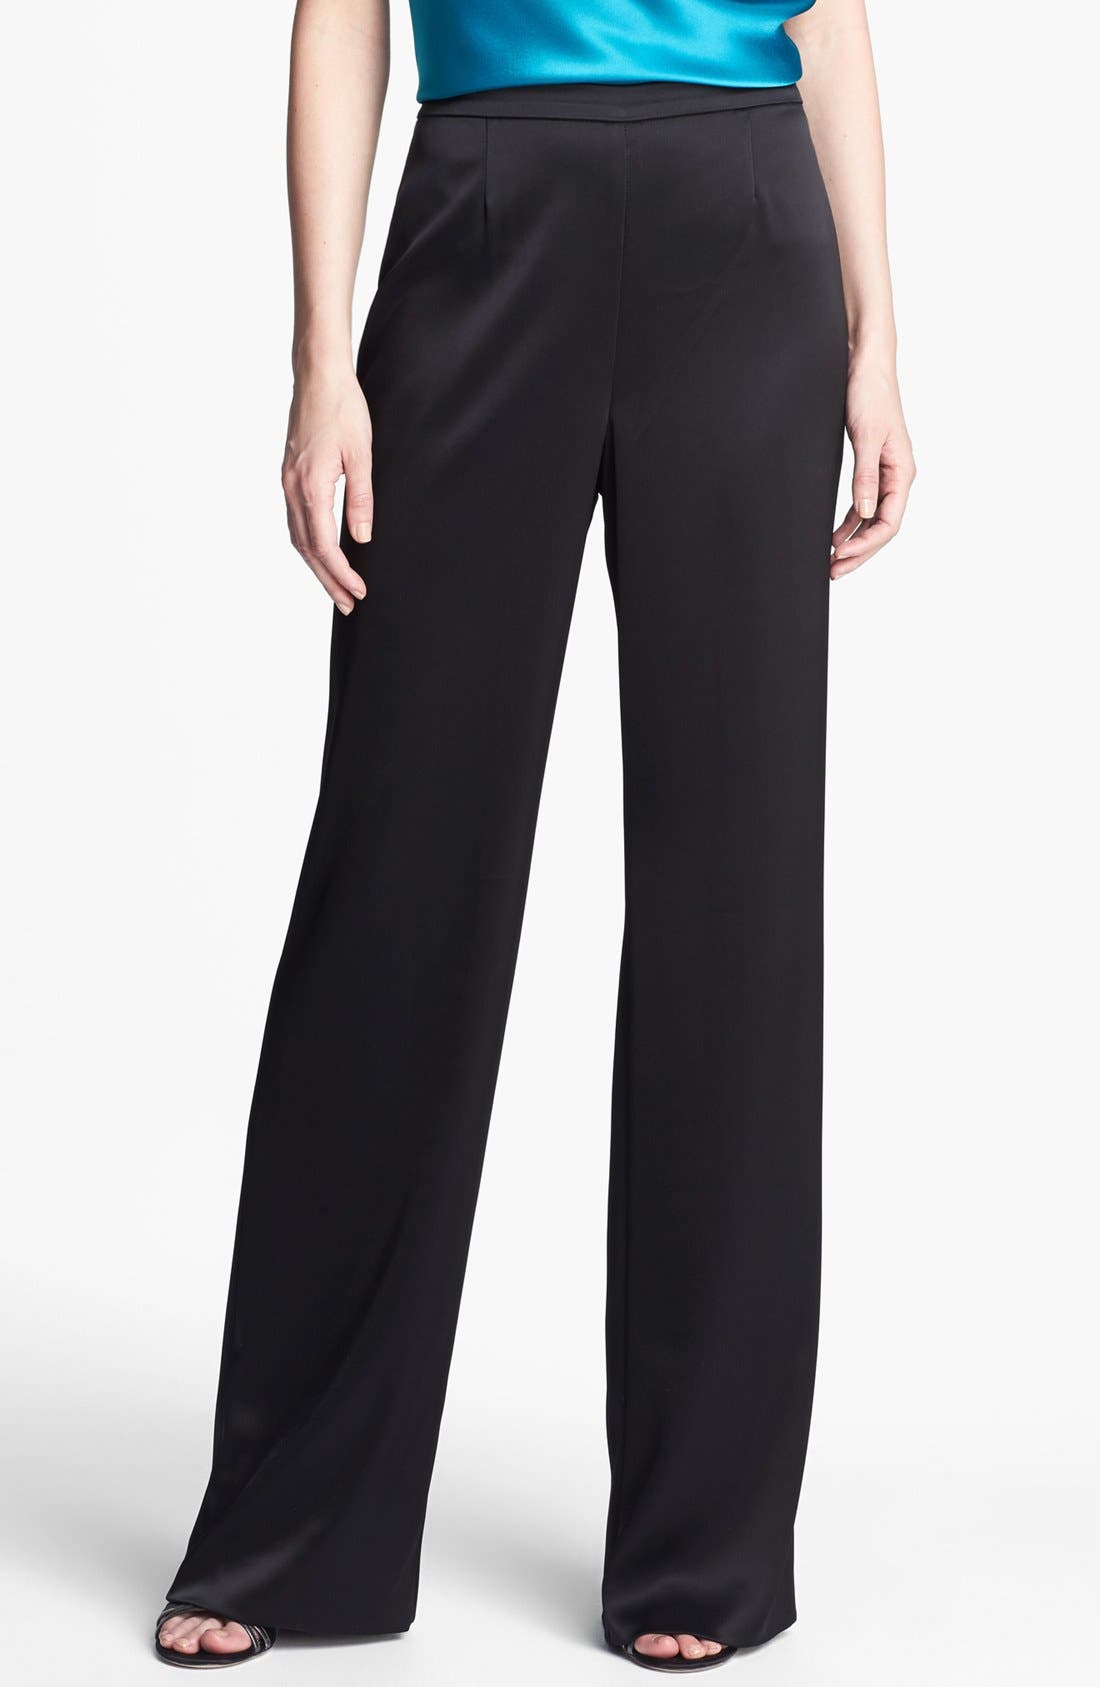 Main Image - St. John Collection 'Kate' Liquid Satin Pants